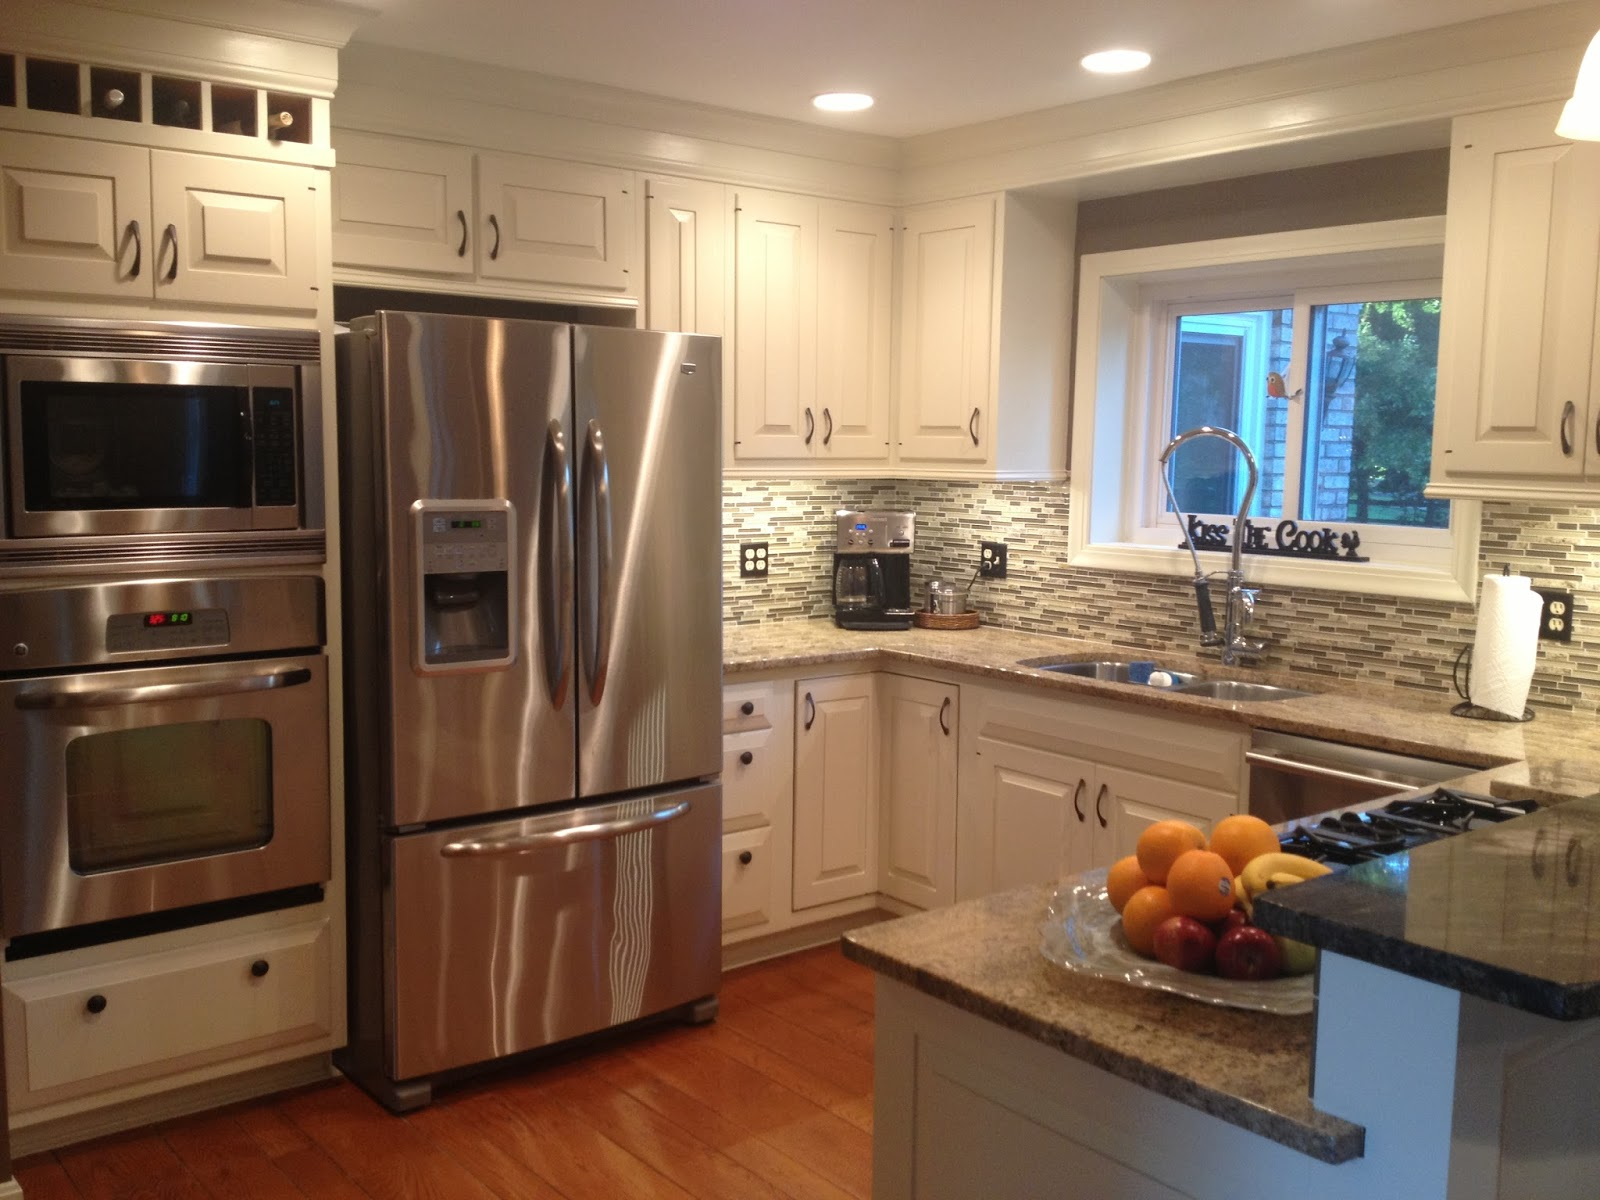 Kitchen Remodel On A Budget four seasons style: the new kitchen - remodel on a budget!!